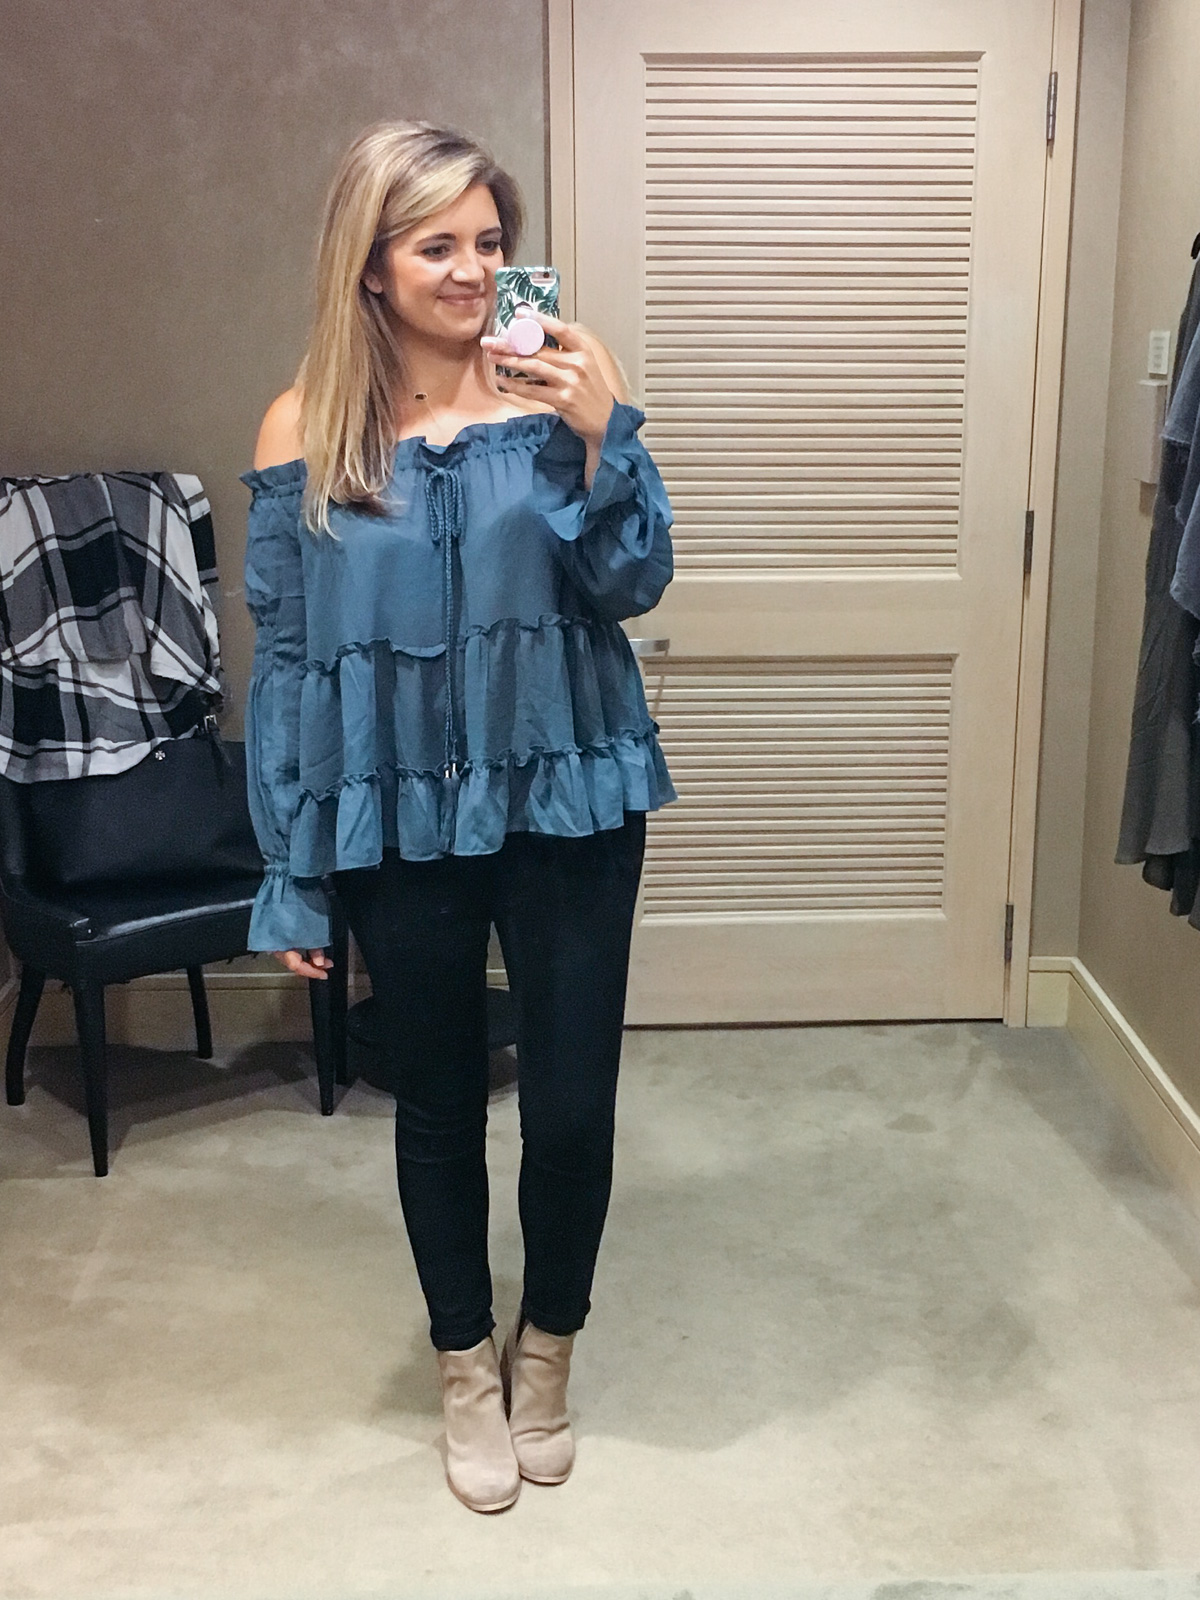 nordstrom try ons - best finds Nordstrom fall 2017 | See the full dressing room review post at bylaurenm.com!